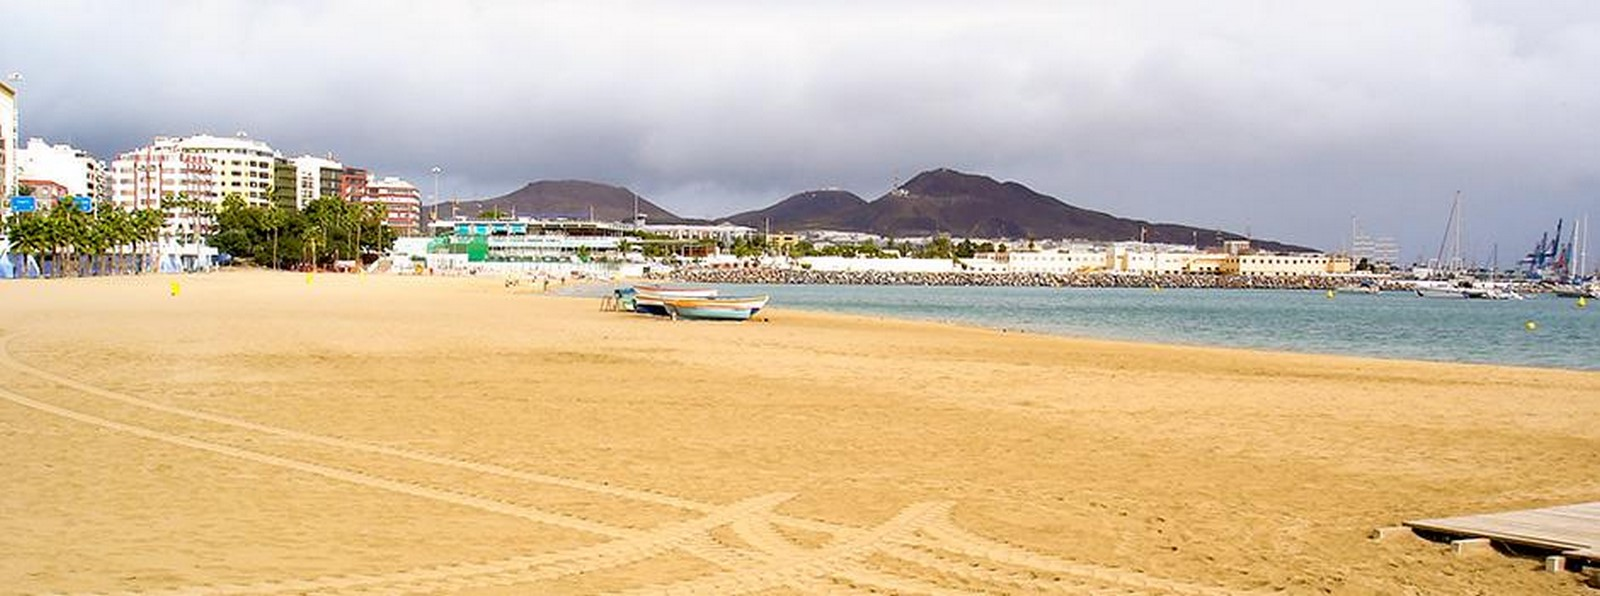 Architecture of Cities: Las Palmas: One of the largest cities in Spain Sheet6